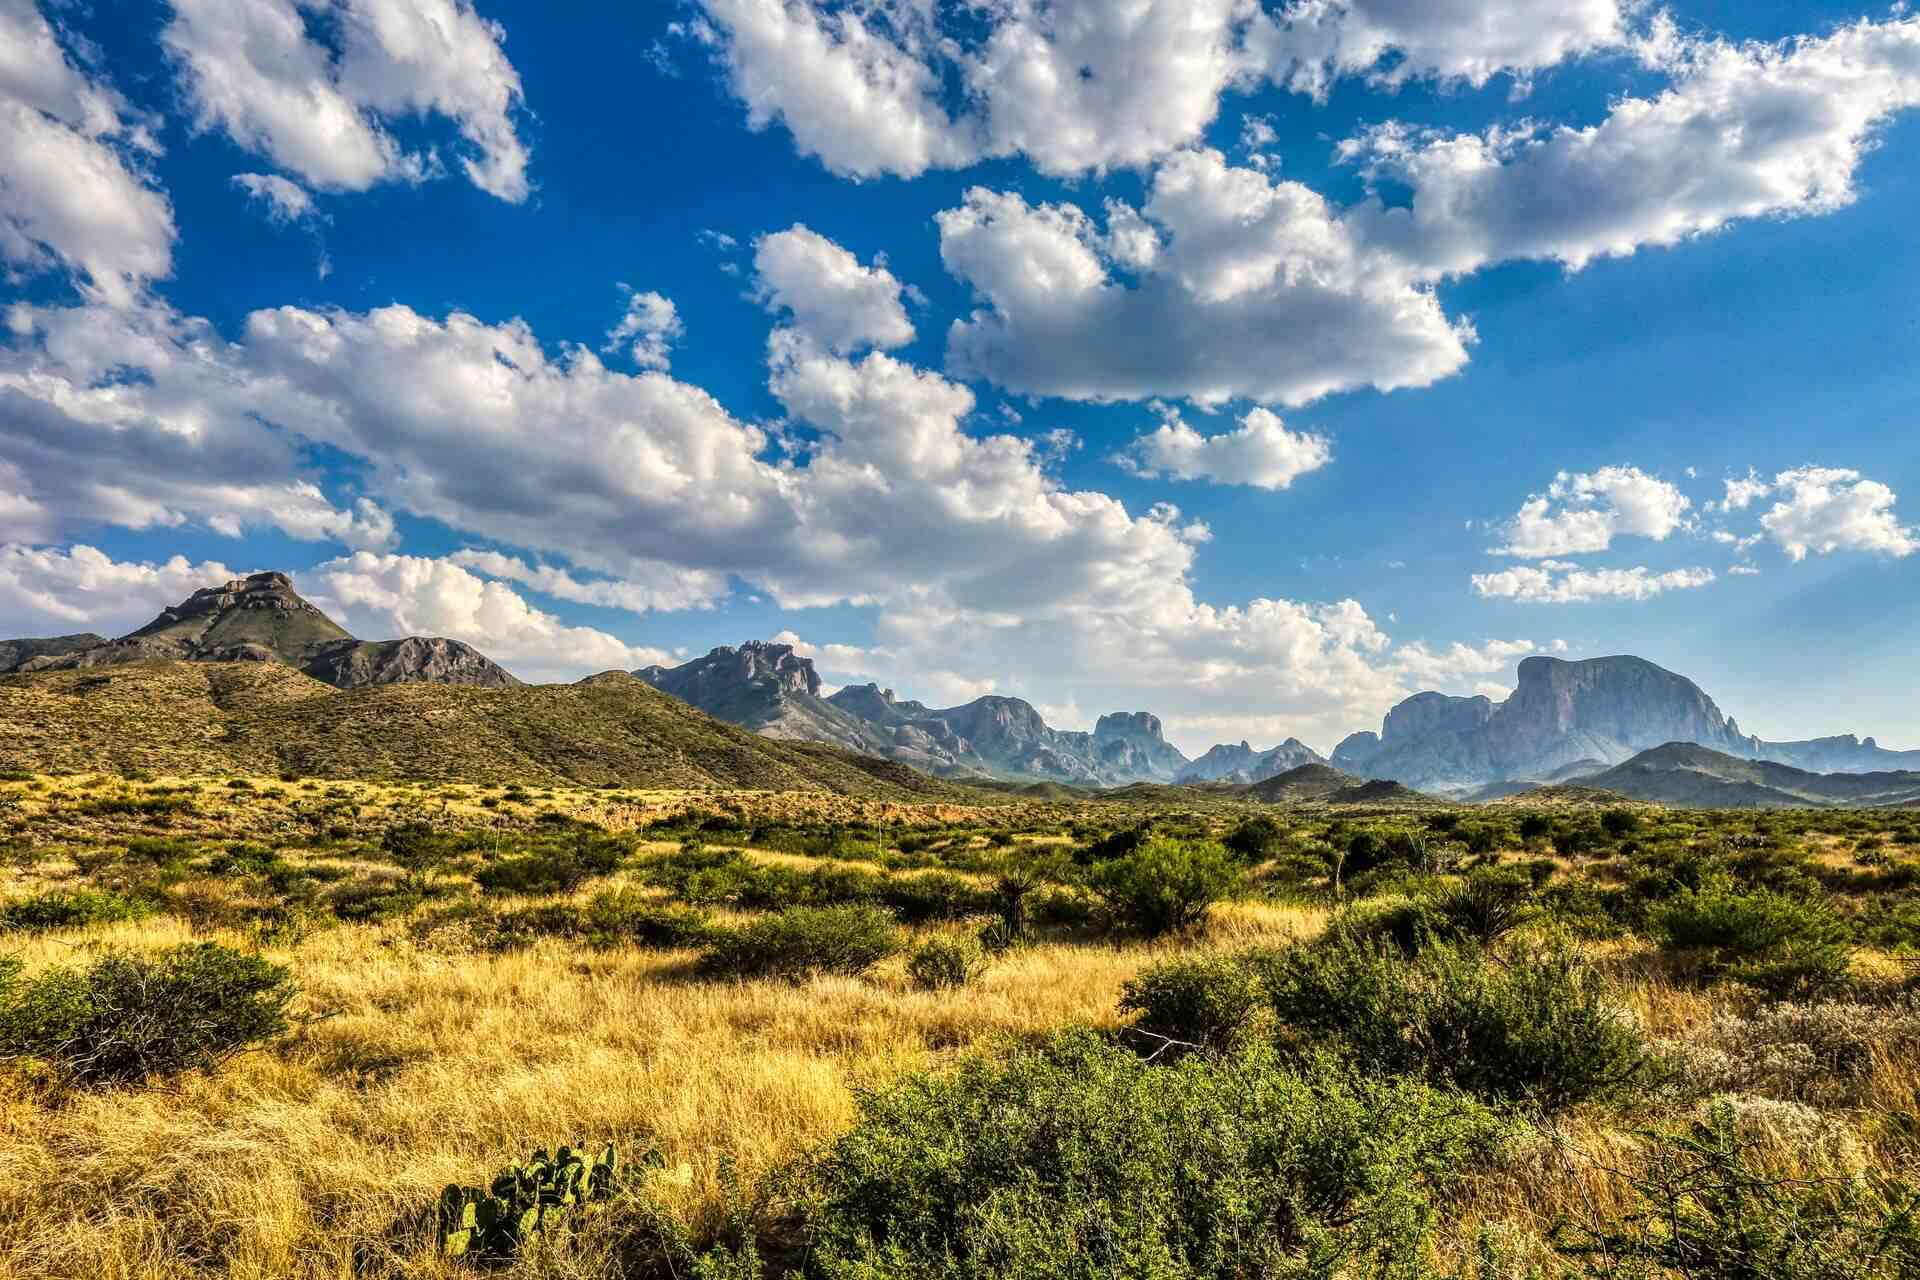 A beautiful landscape of the Big Bend National Park